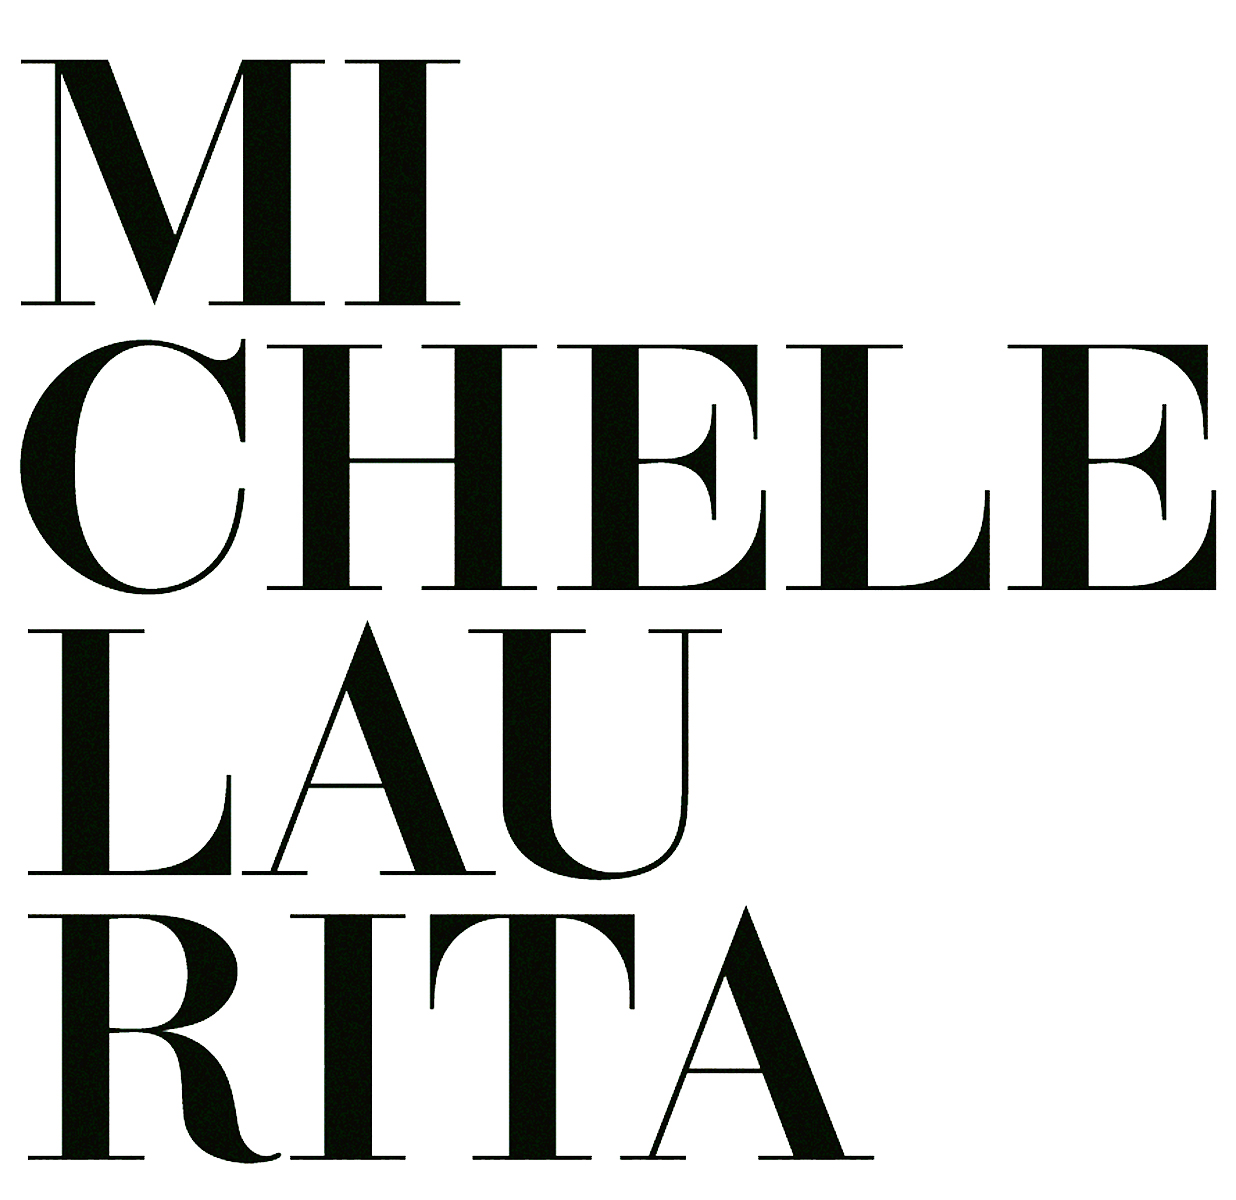 MICHELE LAURITA